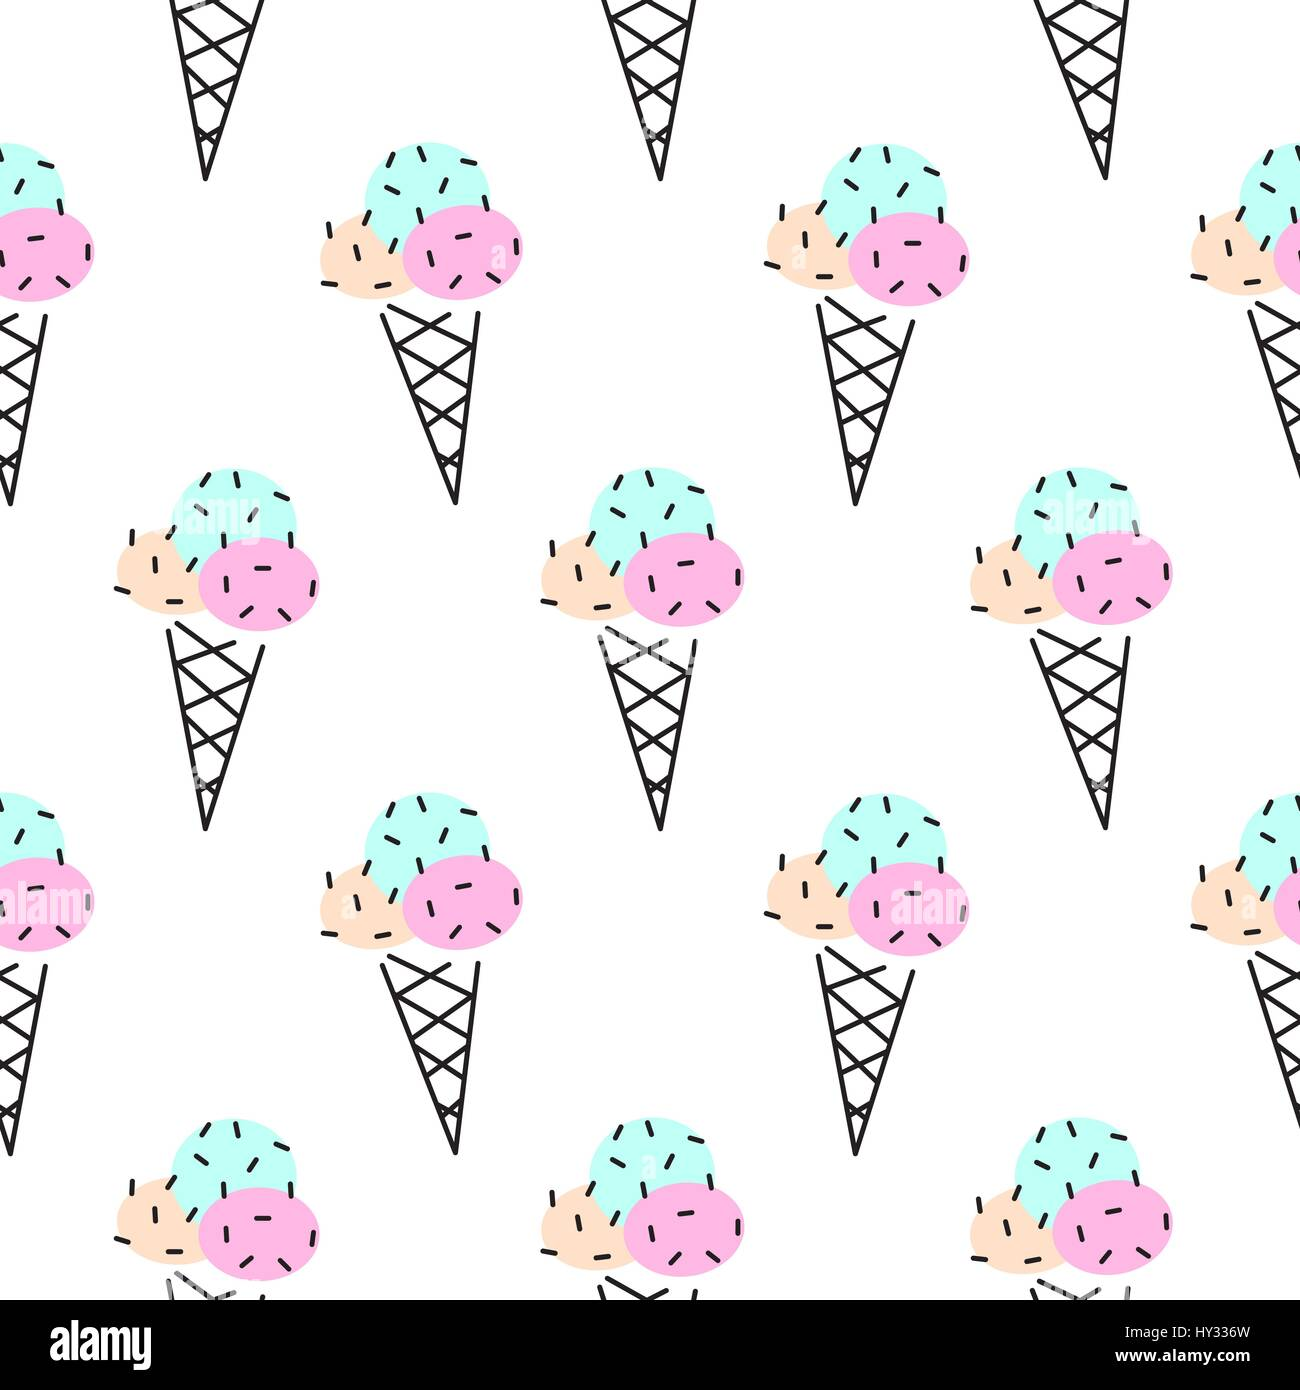 Ice Cream Cones Seamless Pattern Background Stock Vector: Ice Cream Cone Vector Seamless Pattern. Pop Art Pink And